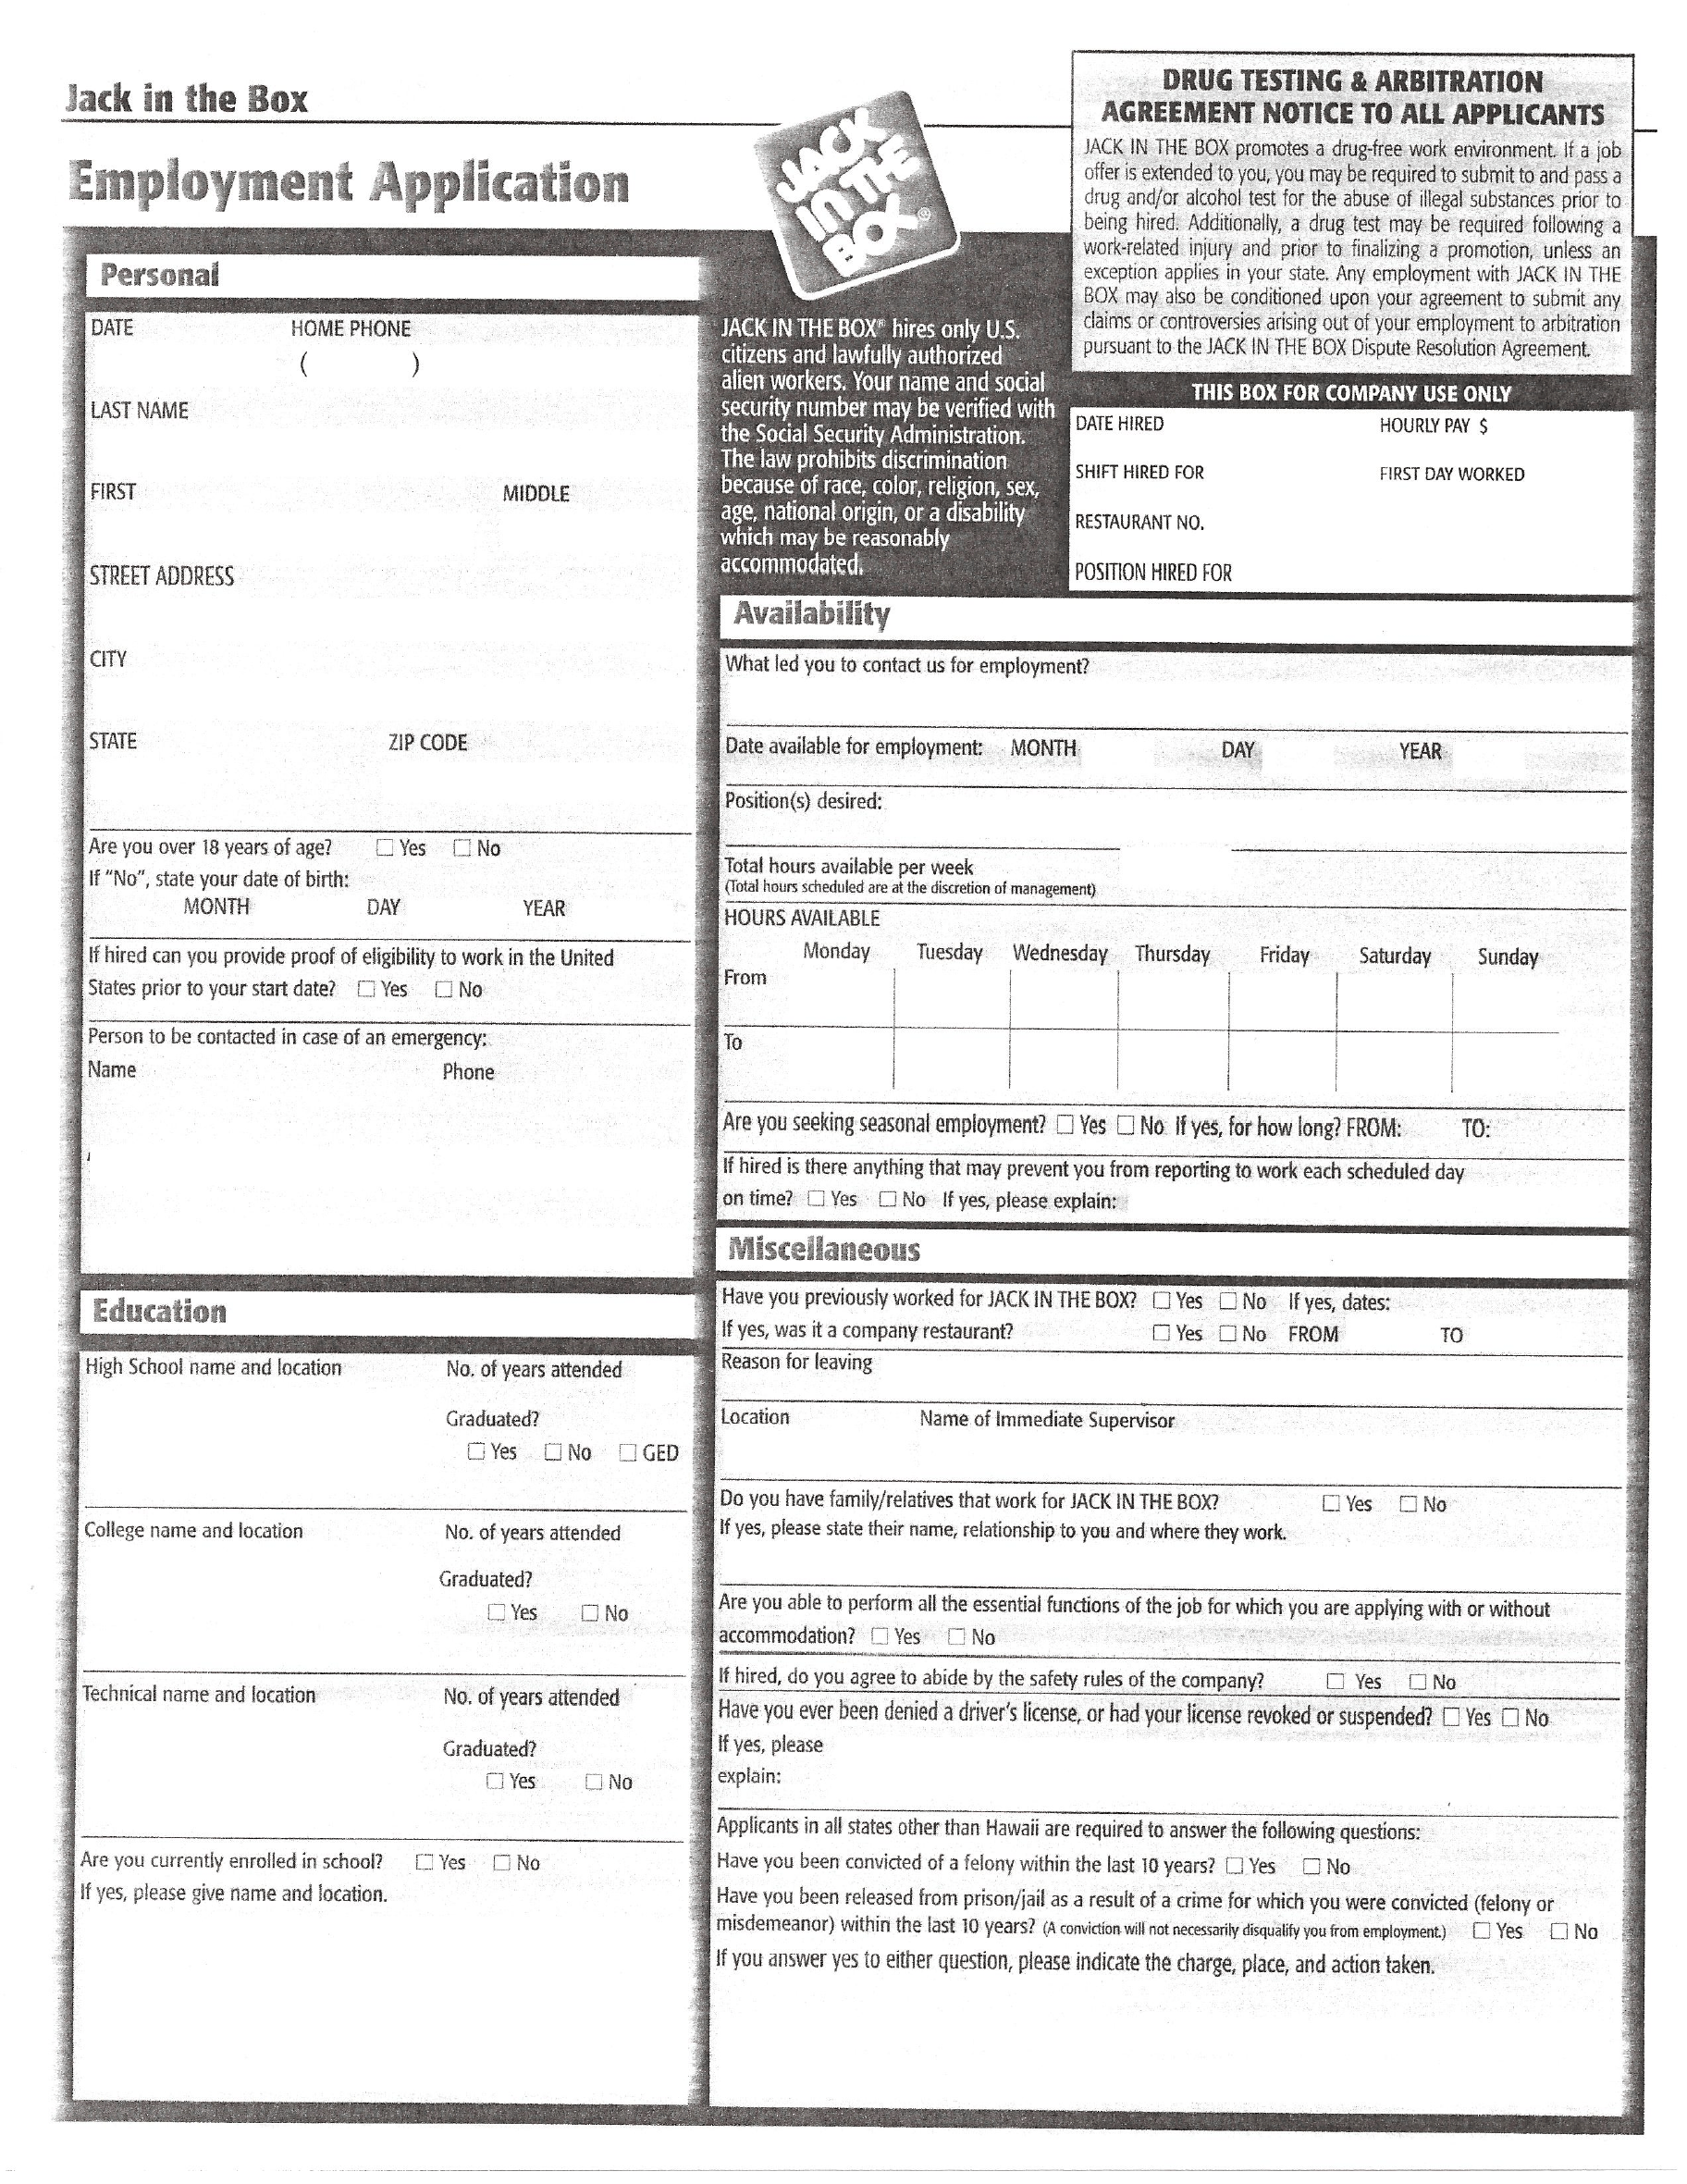 Jack in the Box Part-Time Job Application Form Free Download